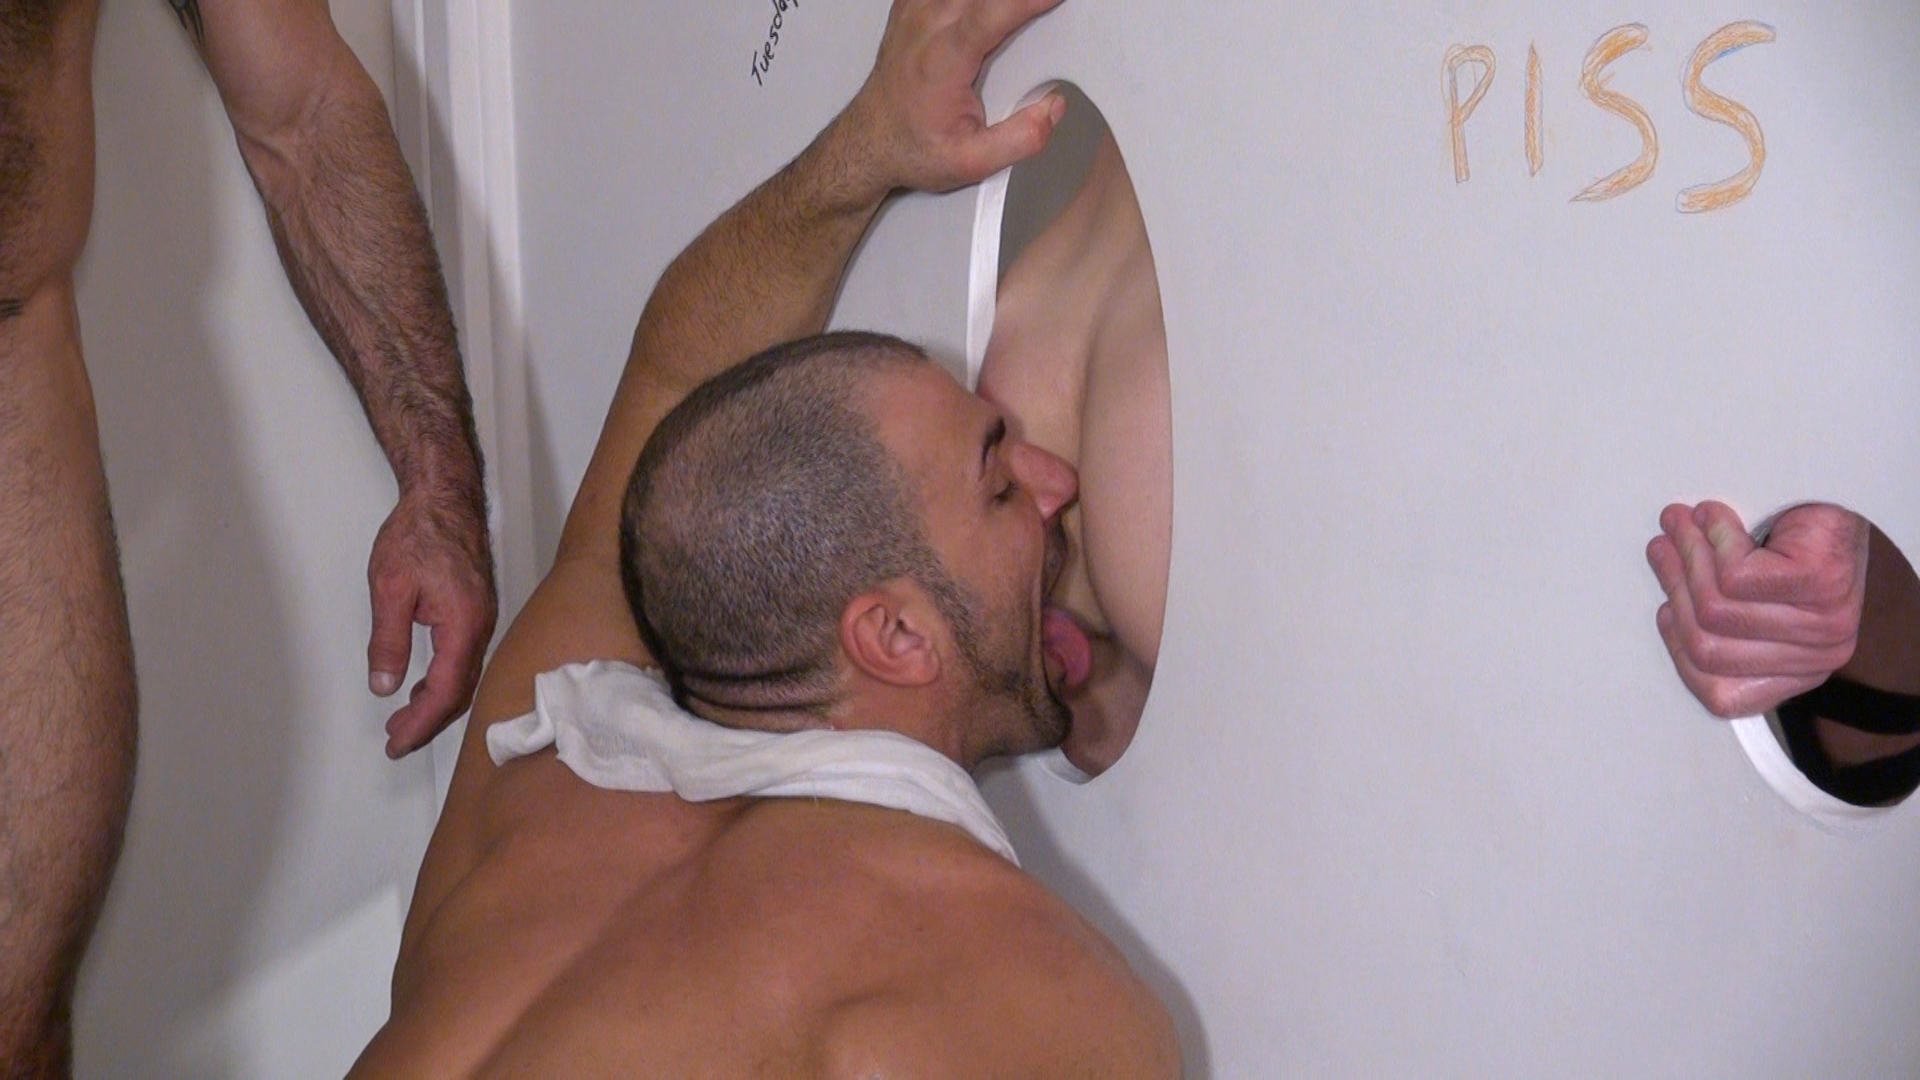 Raw-and-Rough-Jason-Mitchell-Mason-Garet-Todd-Maxwell-Nick-Moretti-Cope-and-Derek-Anthony-Bareback-Truck-stop-gloryhole-sex-Amateur-Gay-Porn-12 Amateur Trucker Sex At A Gloryhole With Piss, Cum and Bareback Action